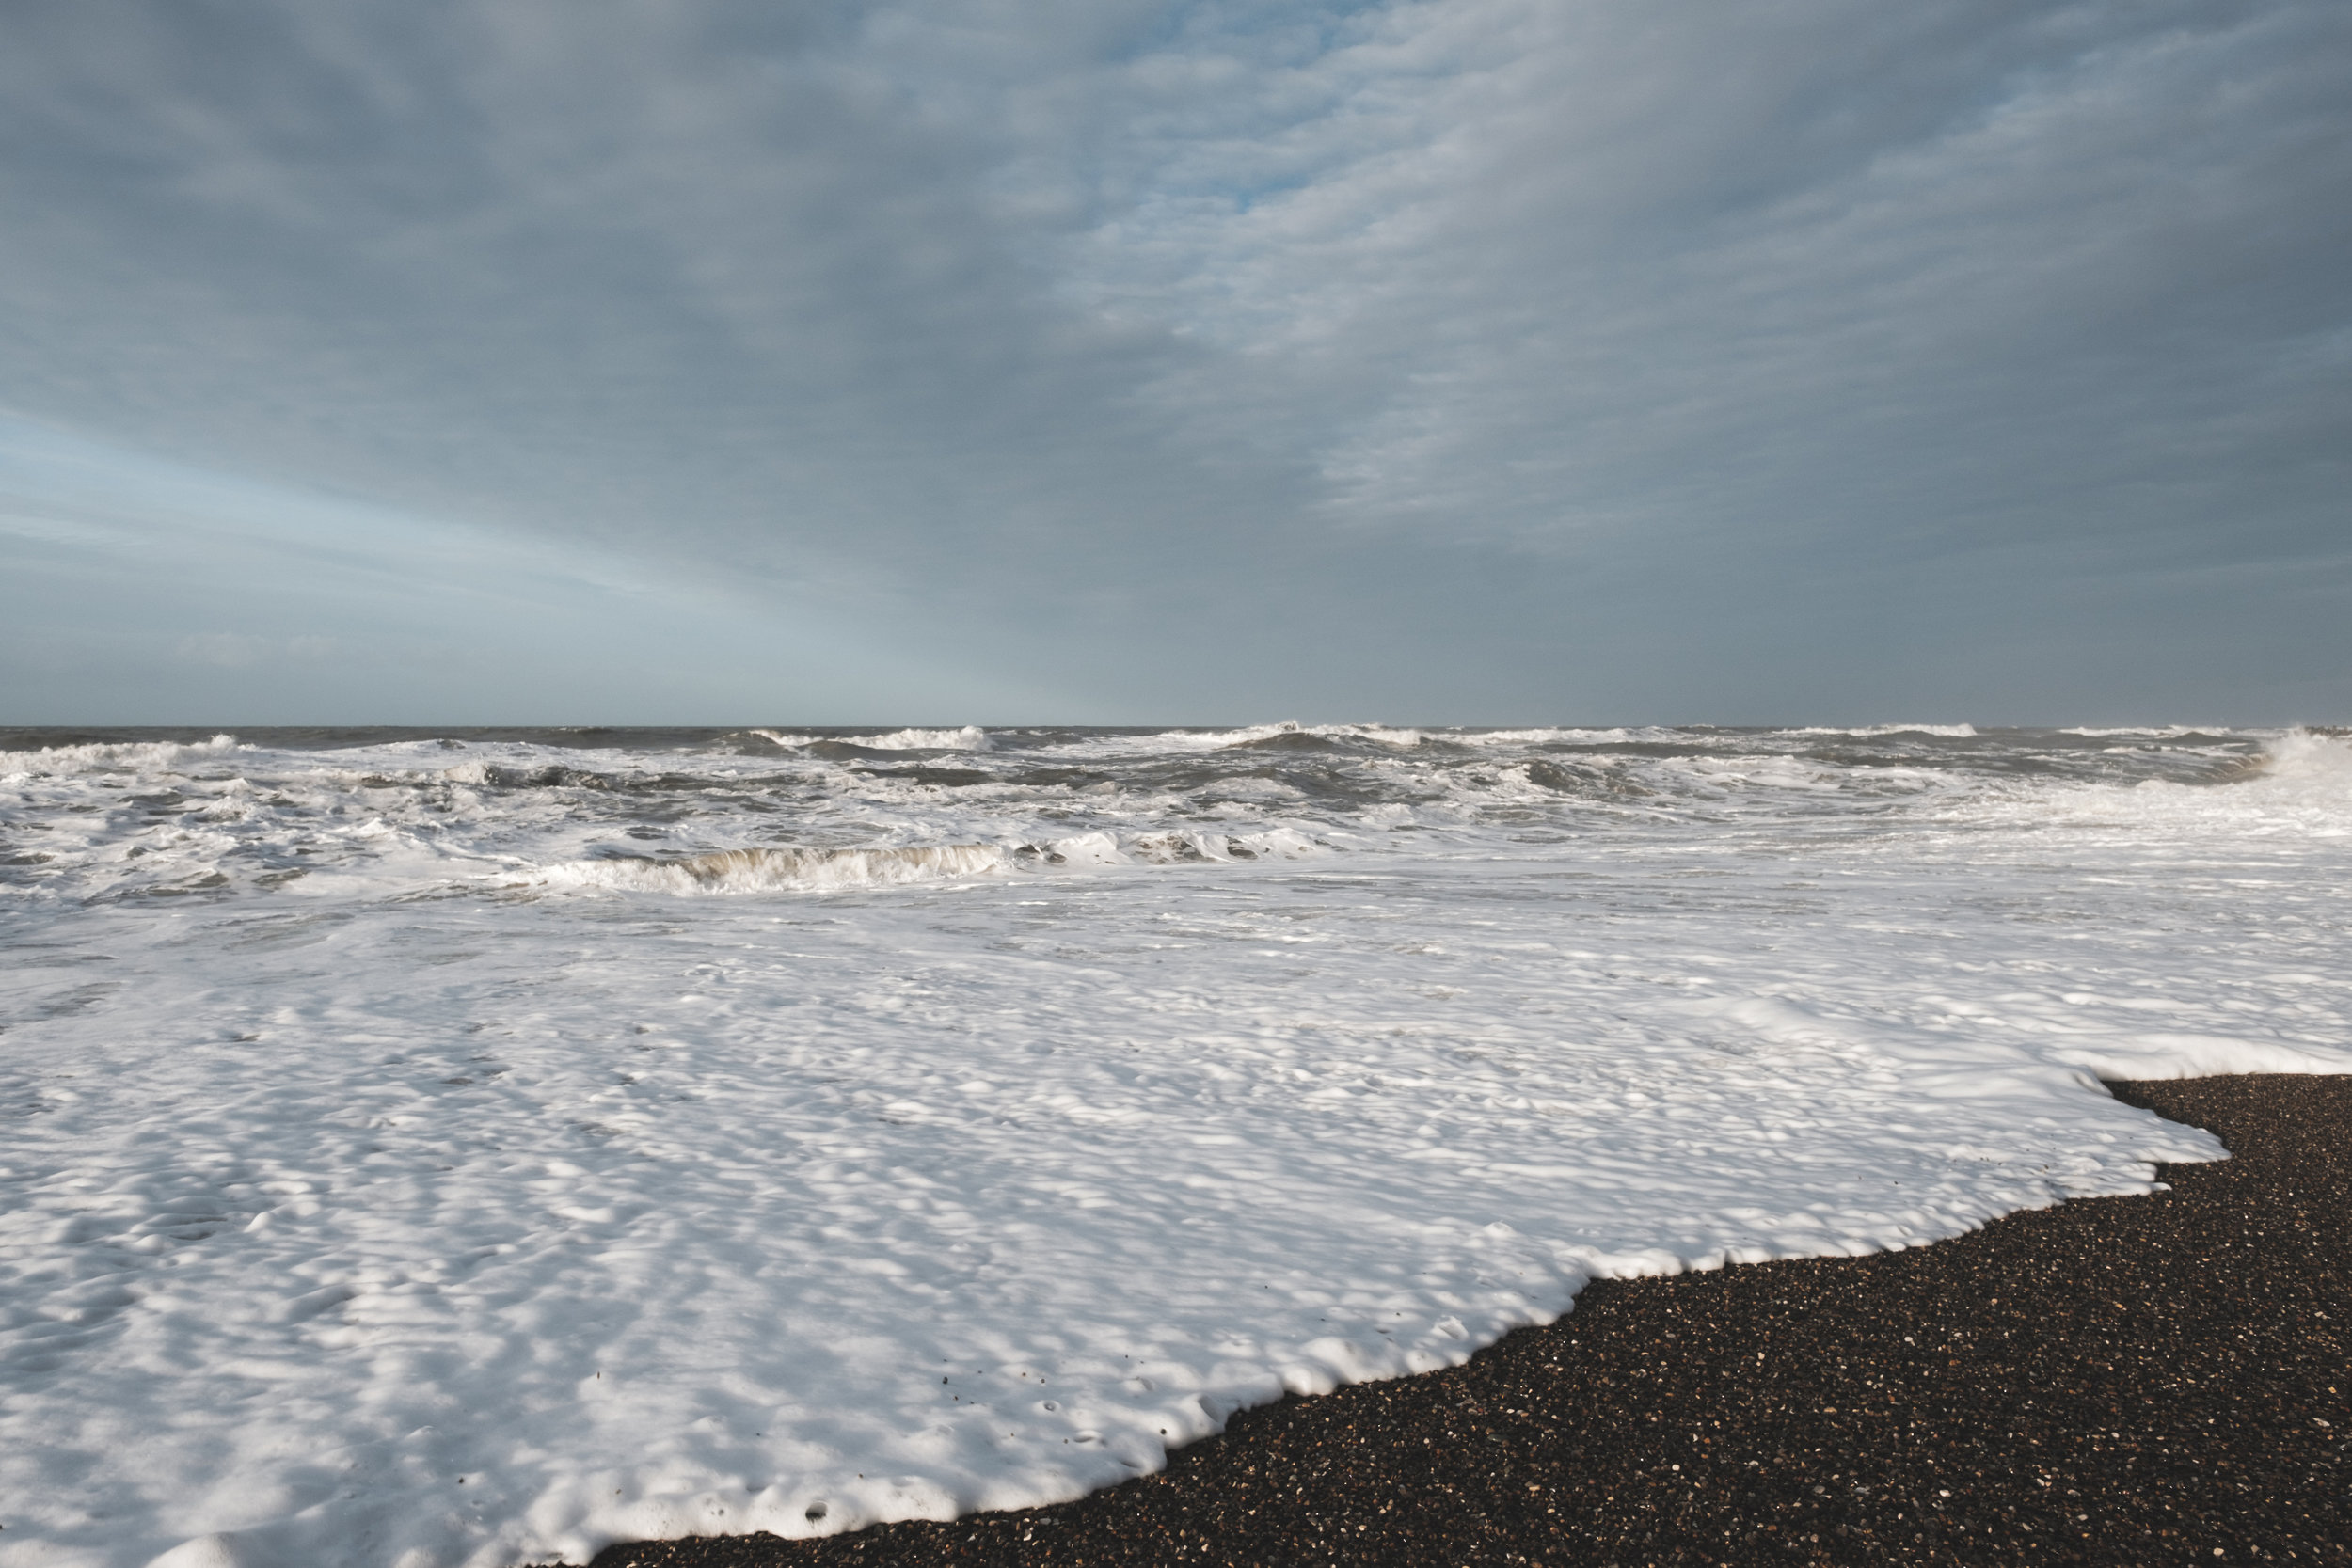 The sun brought out the colours of the sky, sea, foam as well as the darkness of the rocks.